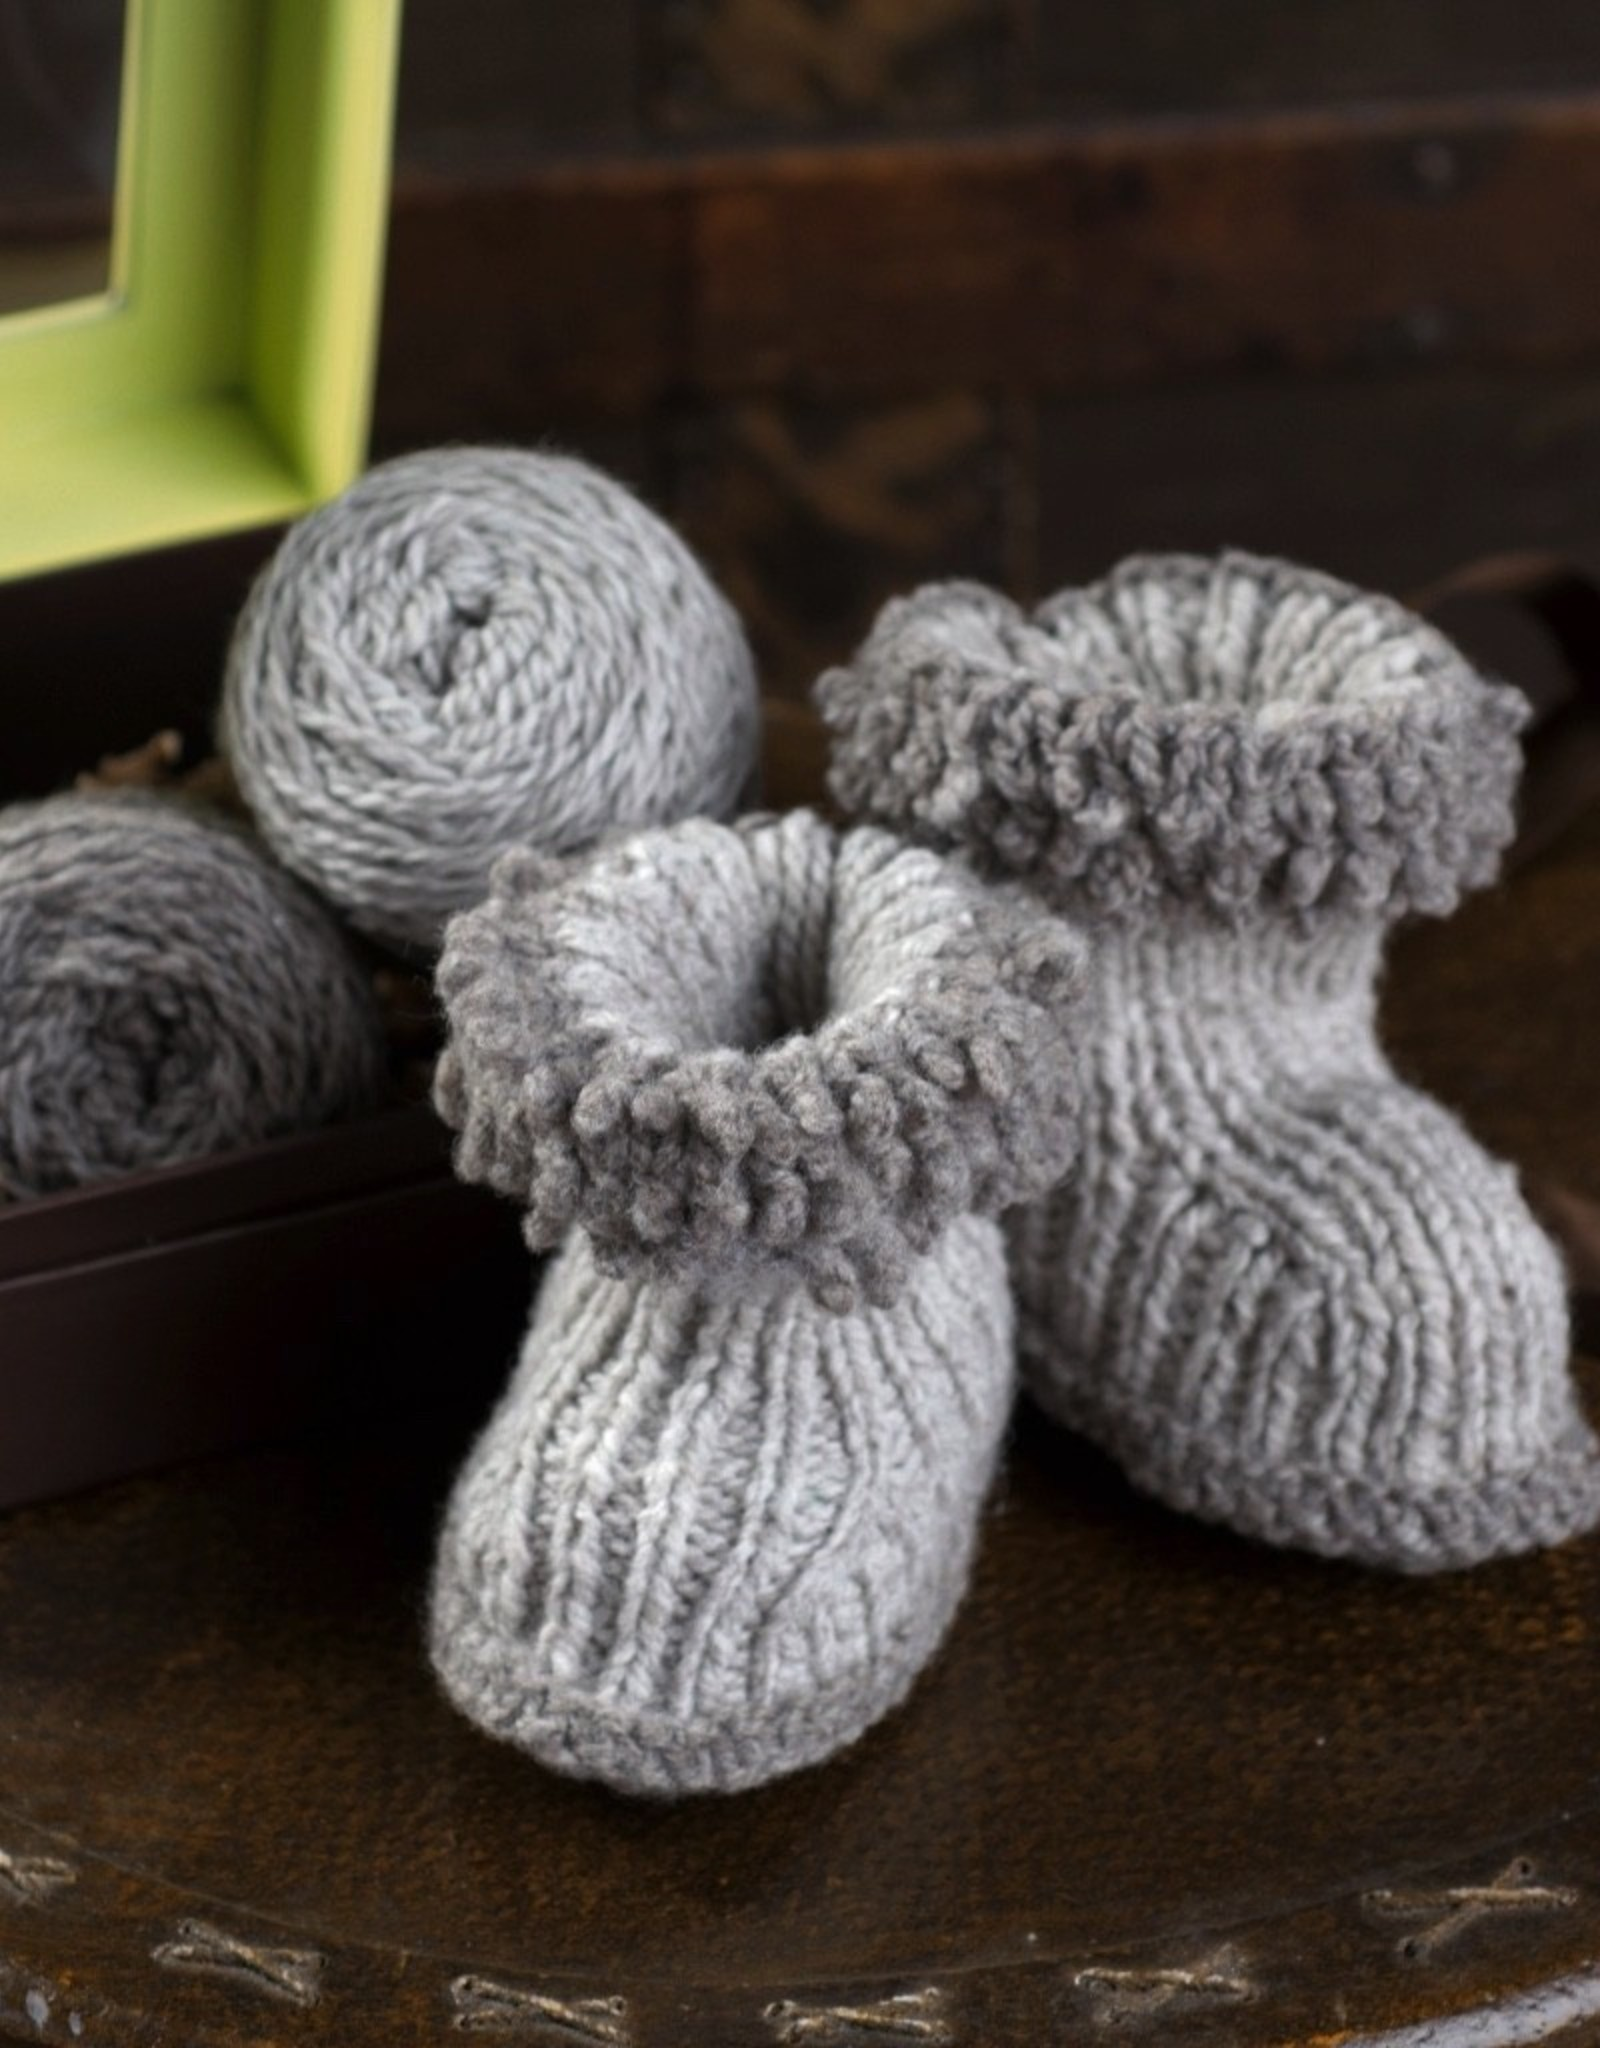 Appalachian Baby Design Appalachian Baby Design - Hello Baby Wool Boots